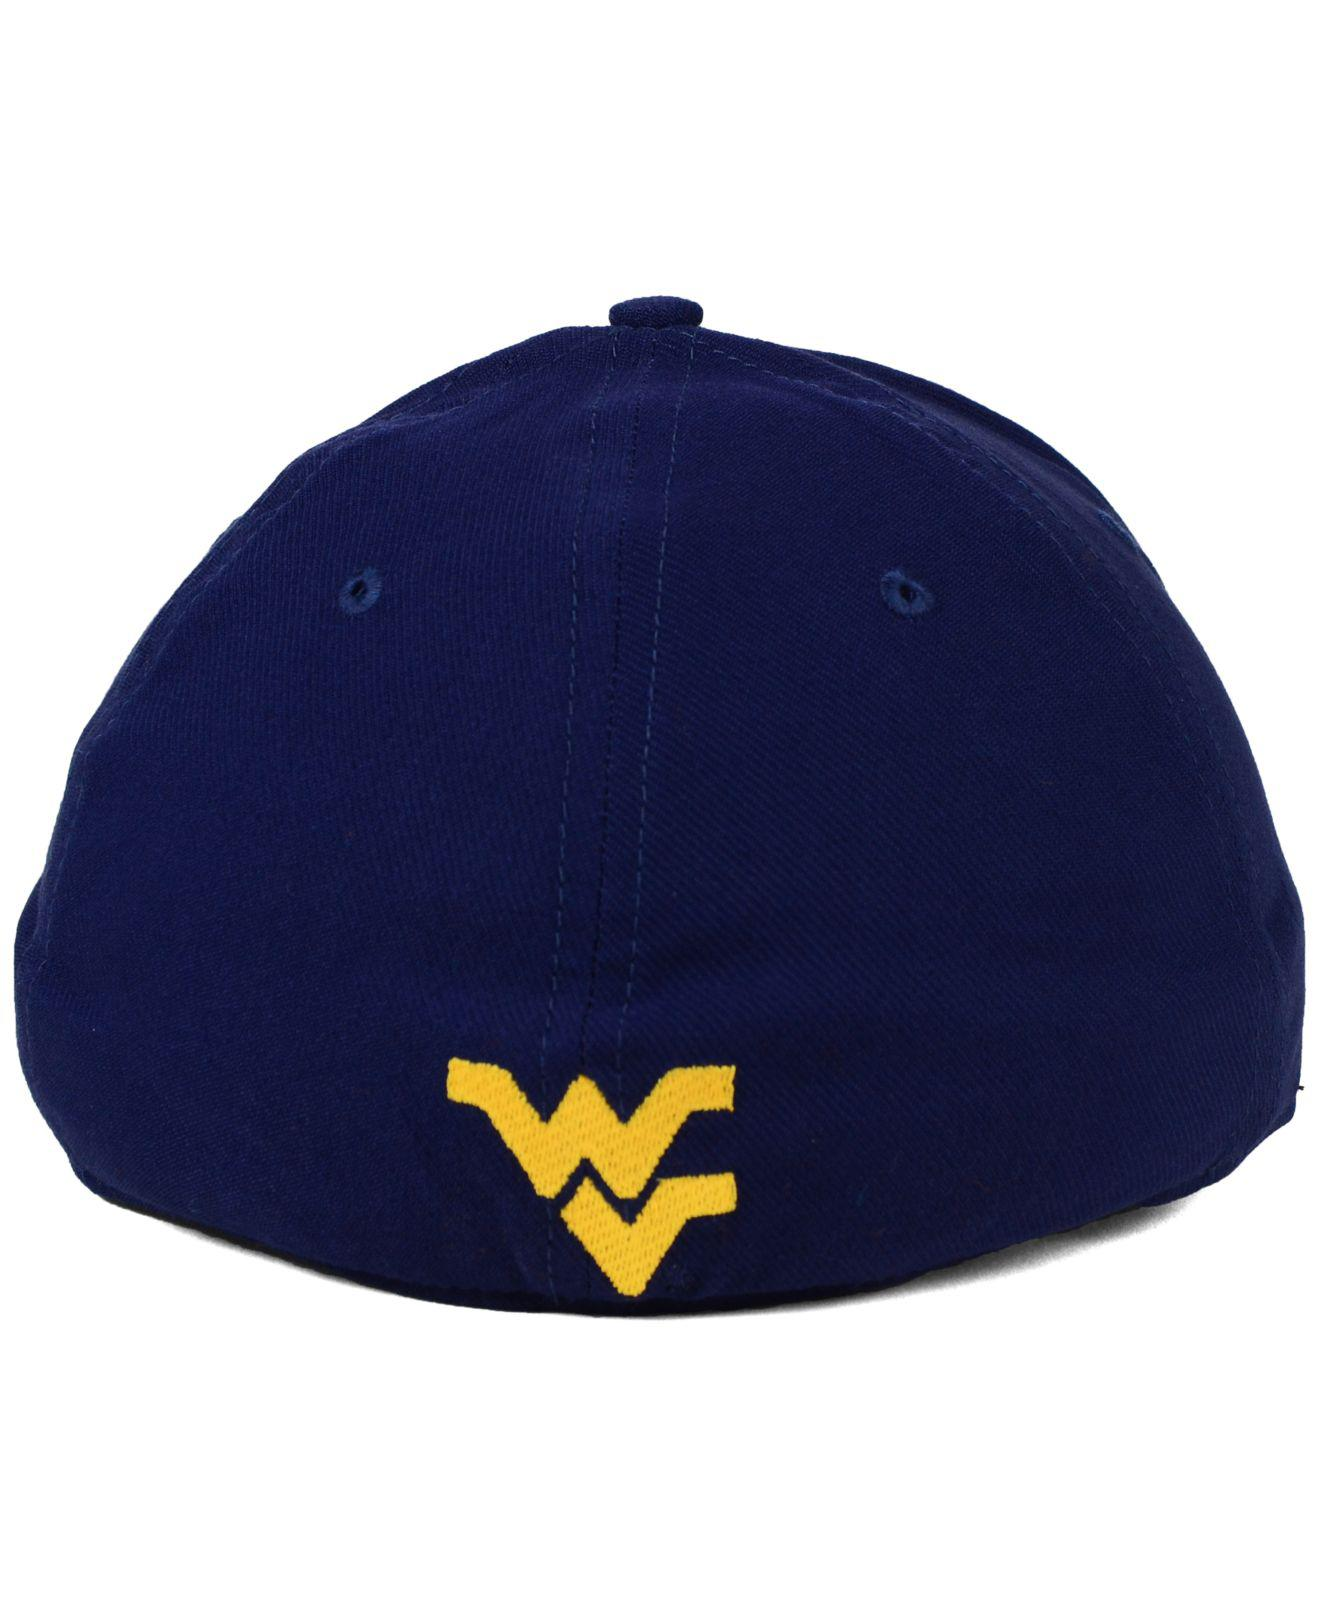 911a9493d06 ... order nike blue west virginia mountaineers classic swoosh cap for men  lyst. view fullscreen 5b46d